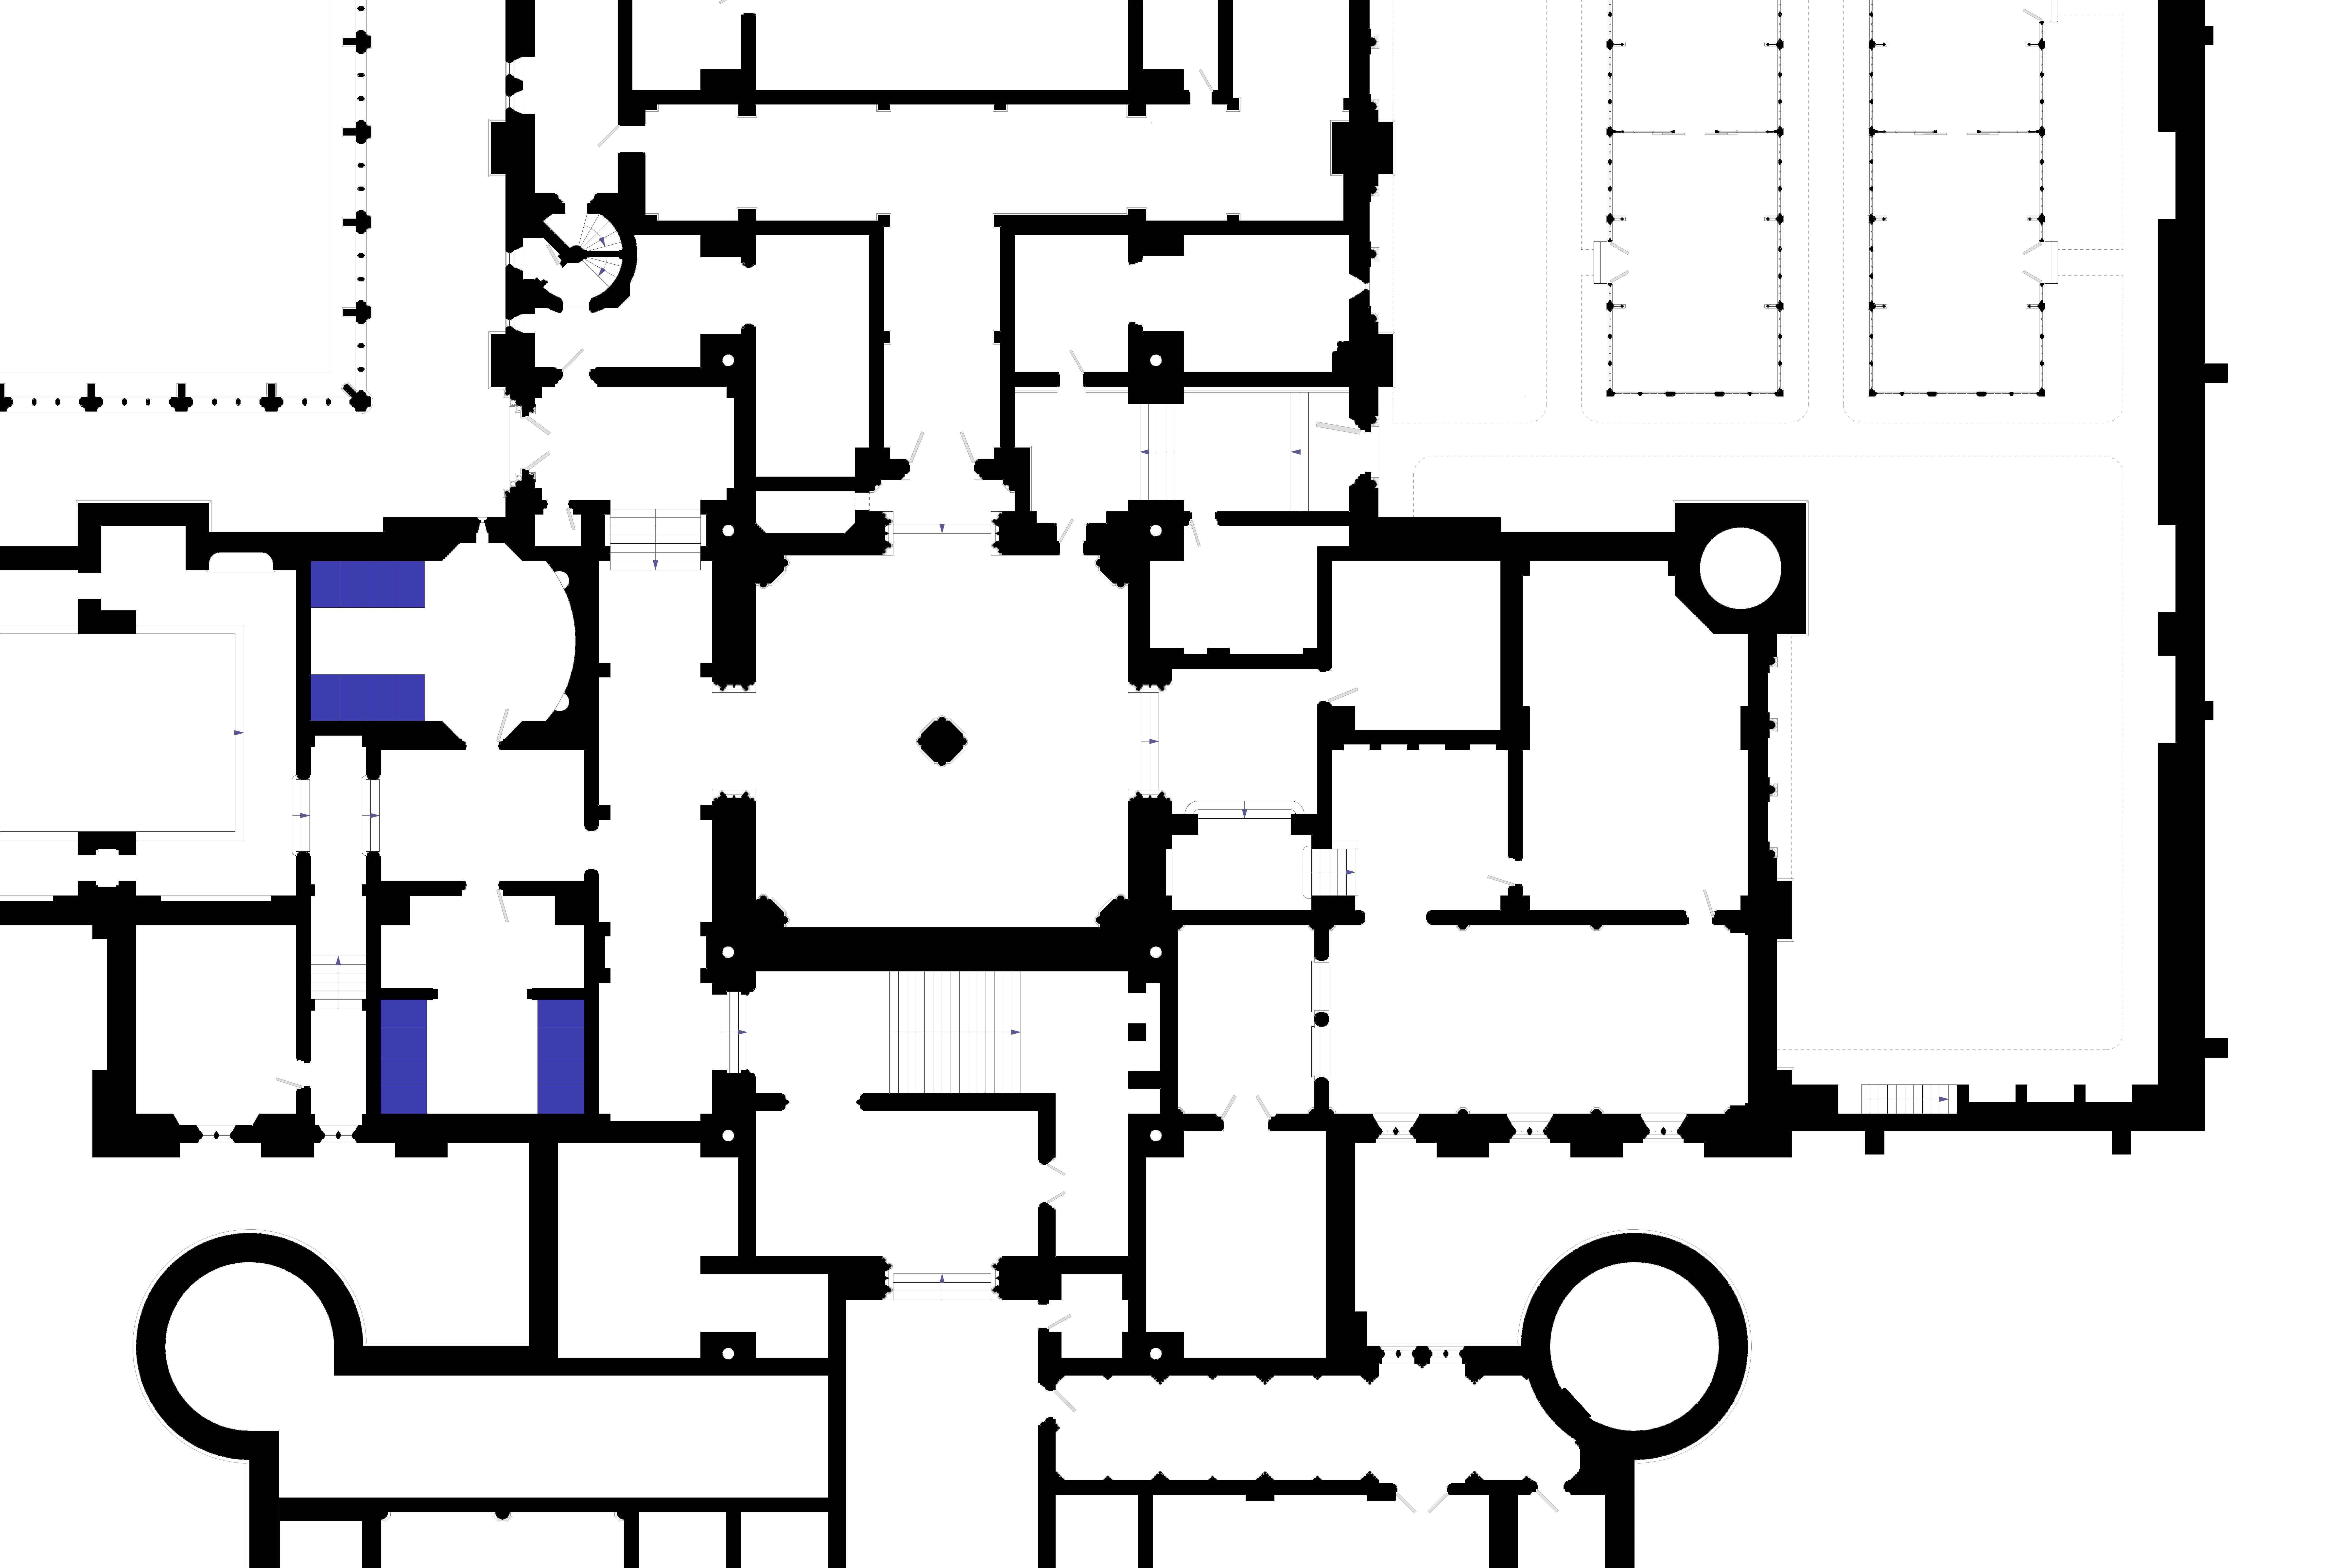 567031409310932047 additionally 528187862521379544 as well Minecraft Castle Schematics Nice Castles as well Hogwarts Map 174581445 together with Hogwarts School Map. on minecraft hogwarts castle floor plan